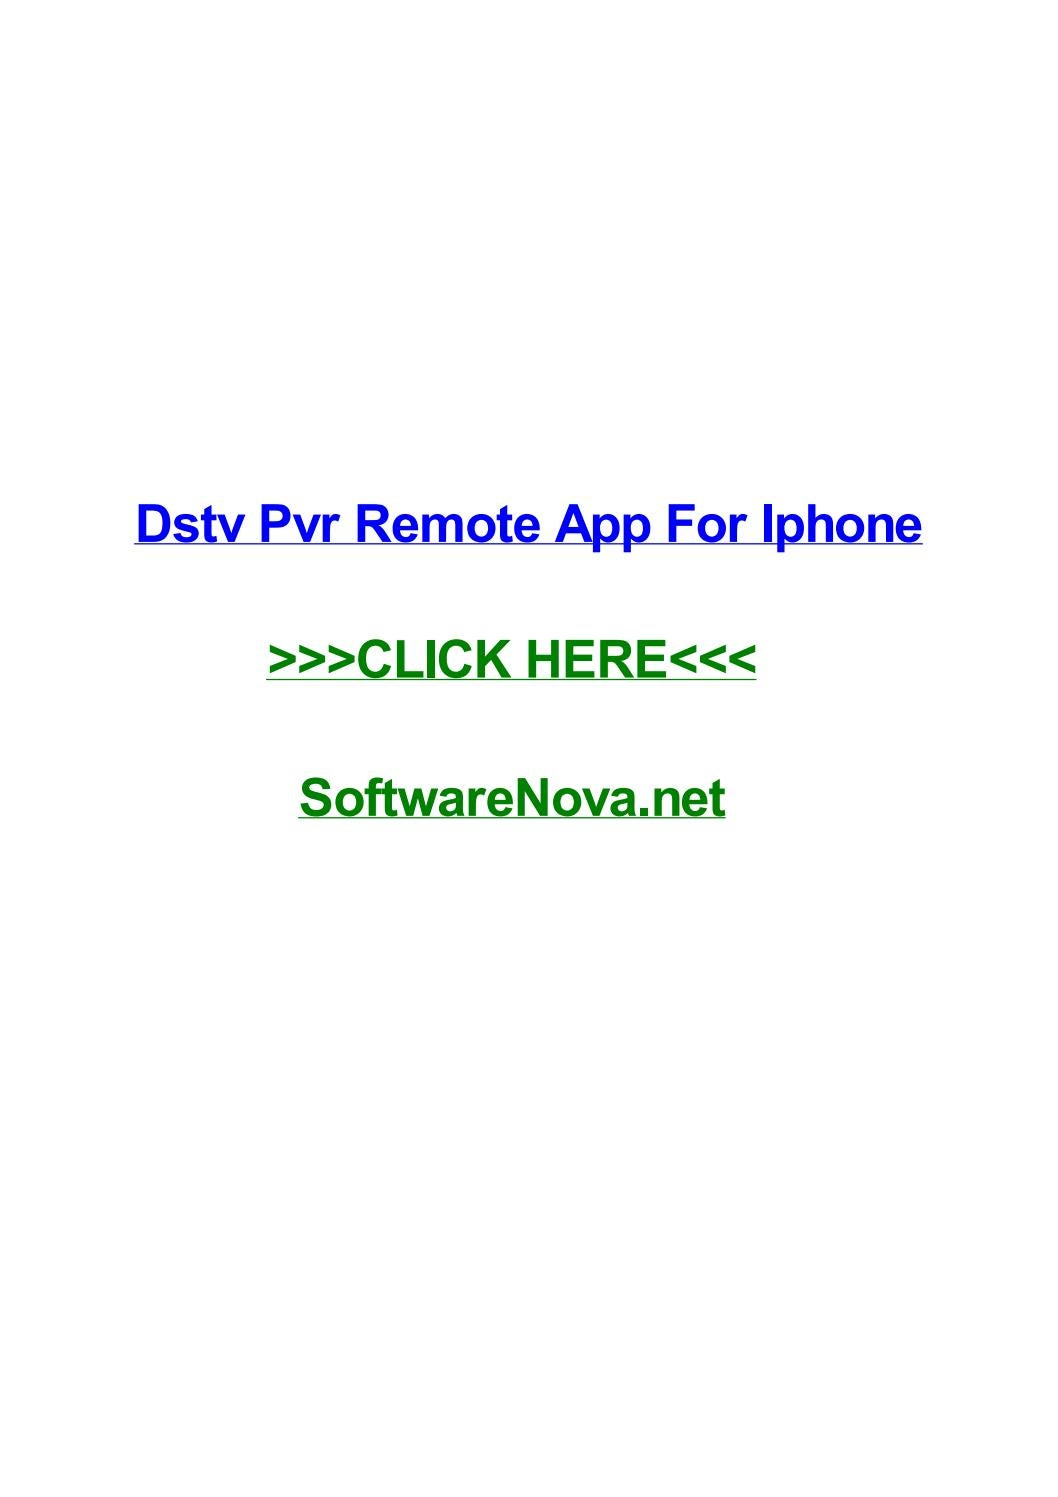 Dstv pvr remote app for iphone by amyhldy - issuu